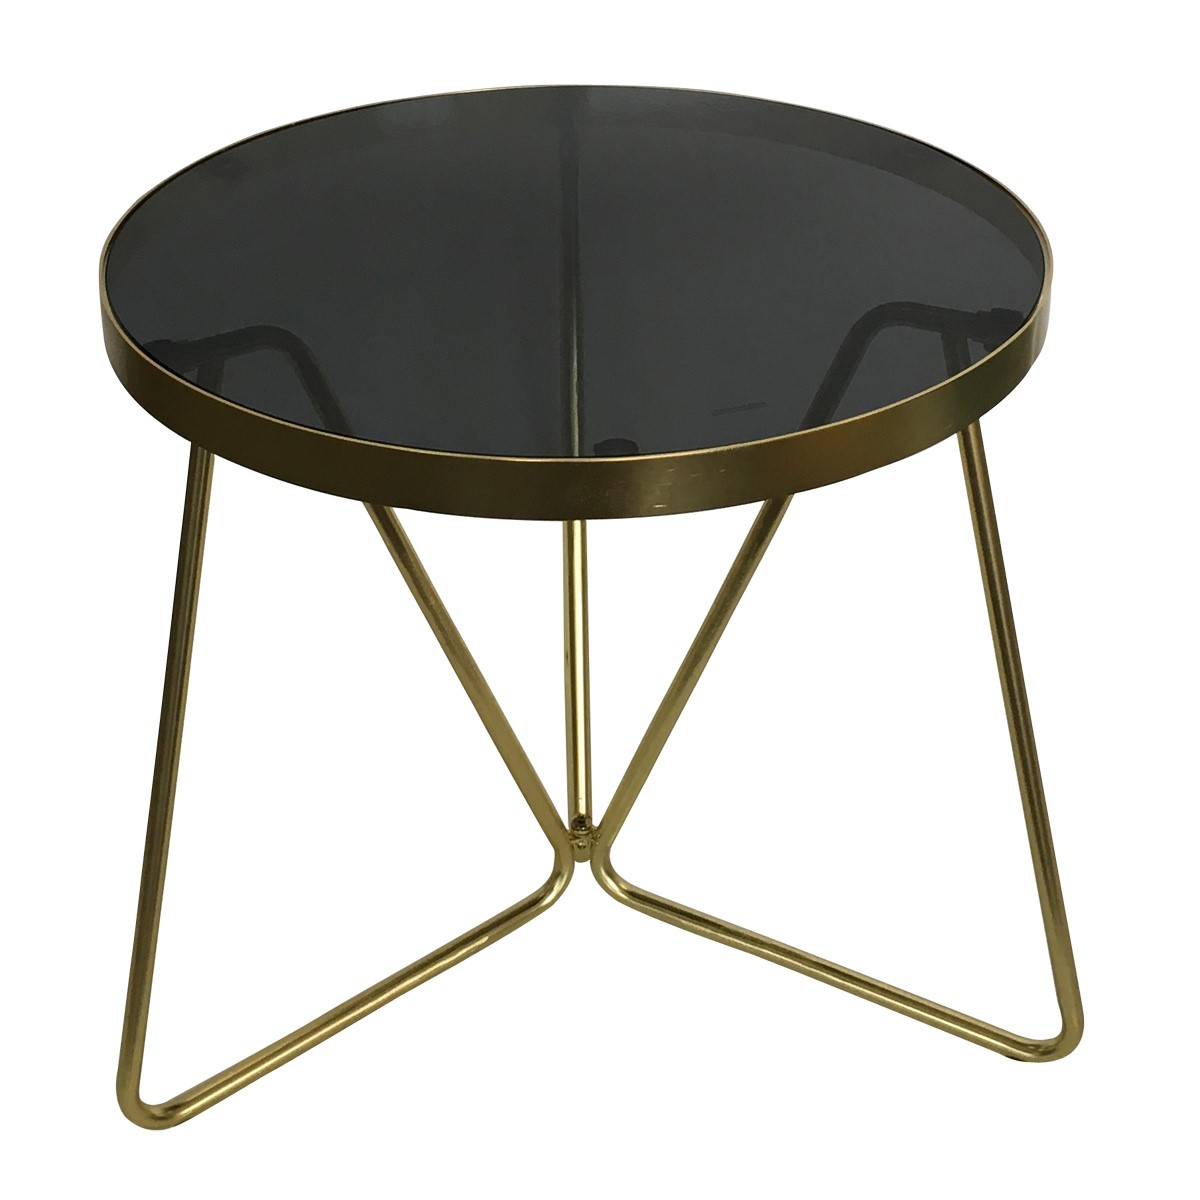 chess tutorial the outrageous favorite black side table kmart round industrial metal coffee tables designs complete living room ideas furniture small marble top accent patio